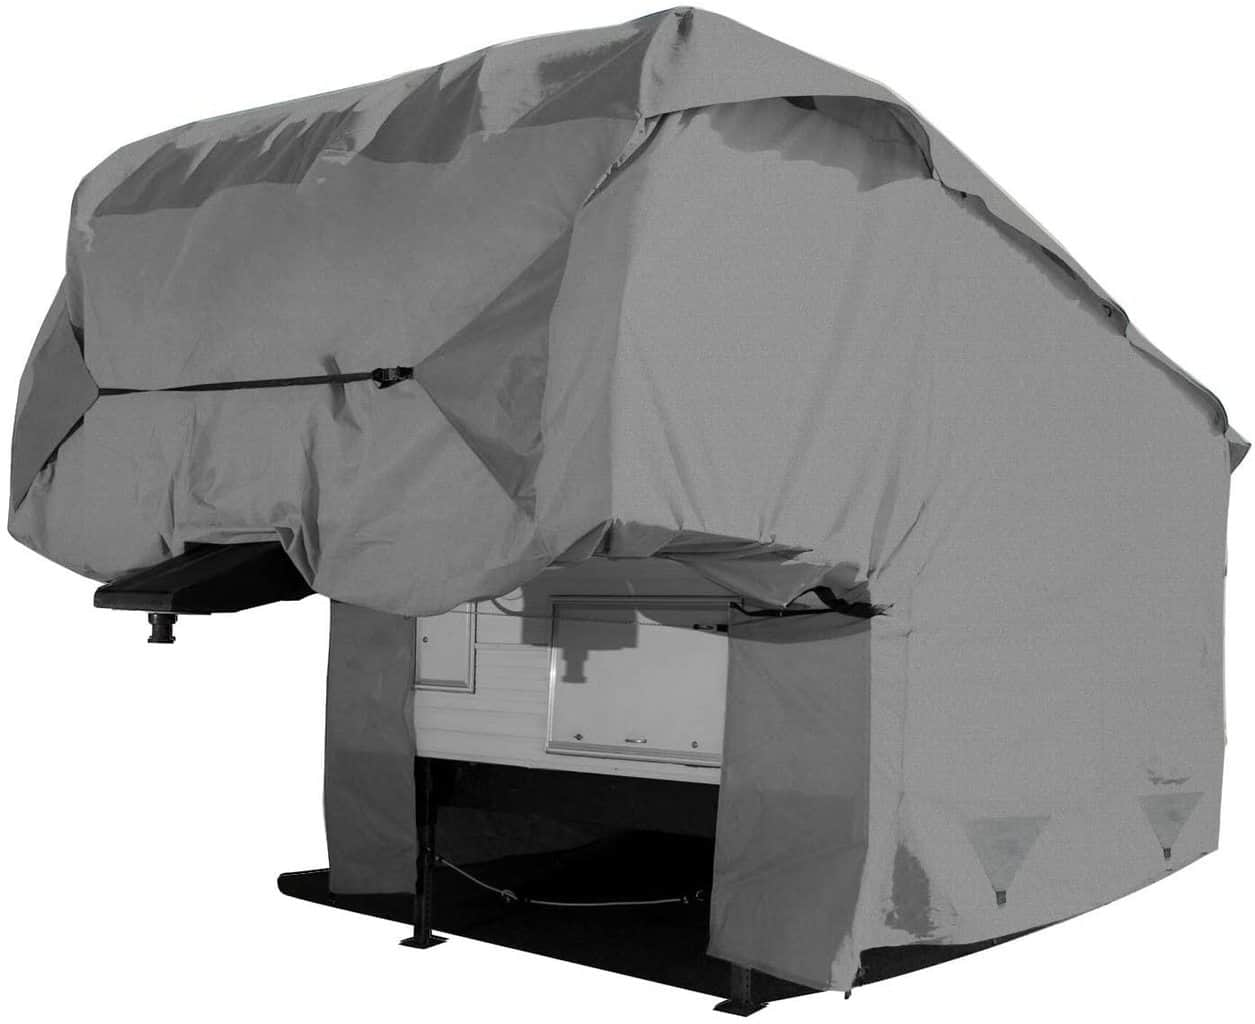 Arch Motoring Five Layers Best 5th Wheel Cover